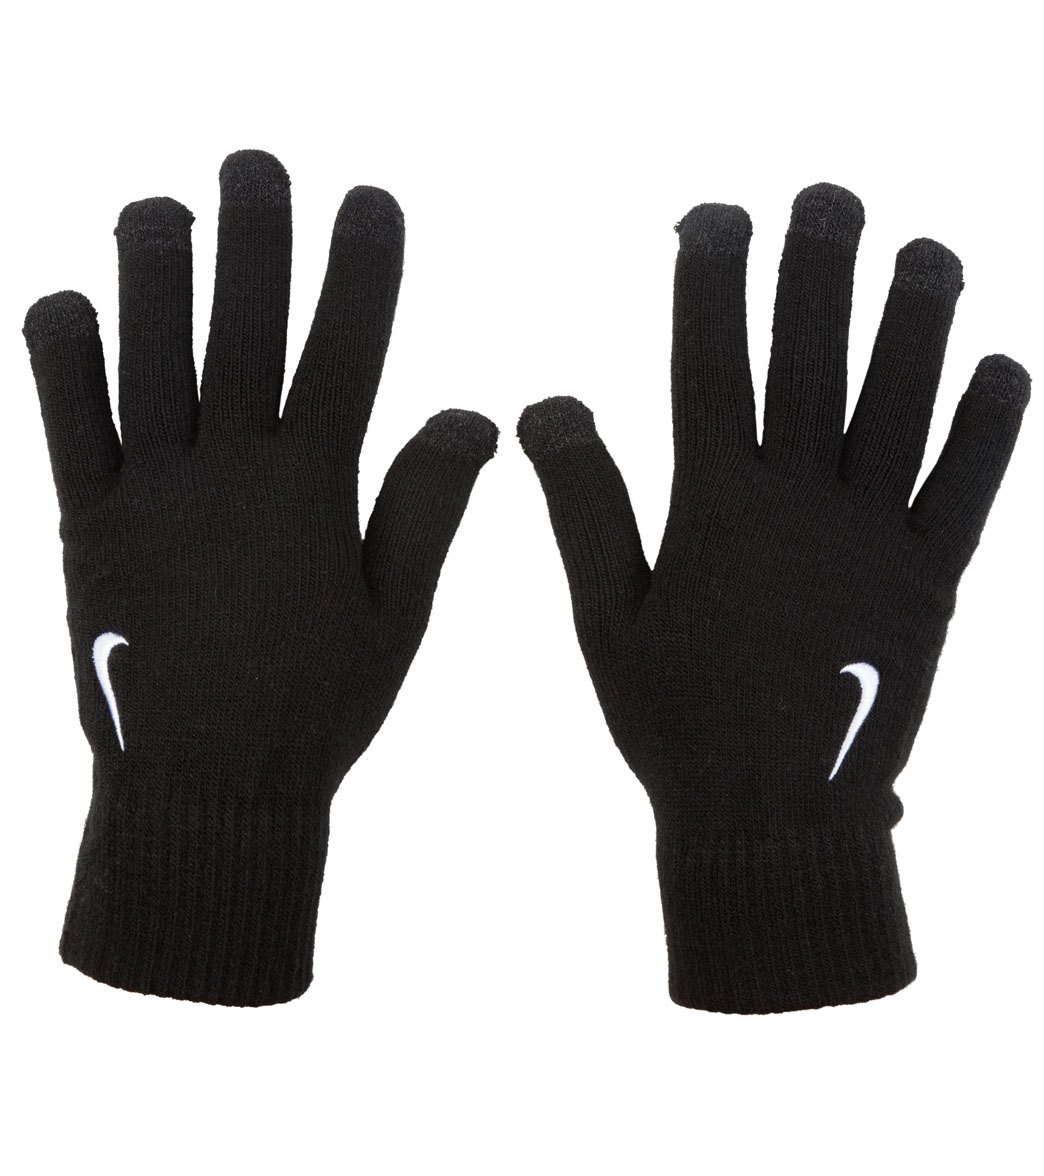 fc1bdef04 Nike Knitted Tech Gloves with Touch Screen Compatibility